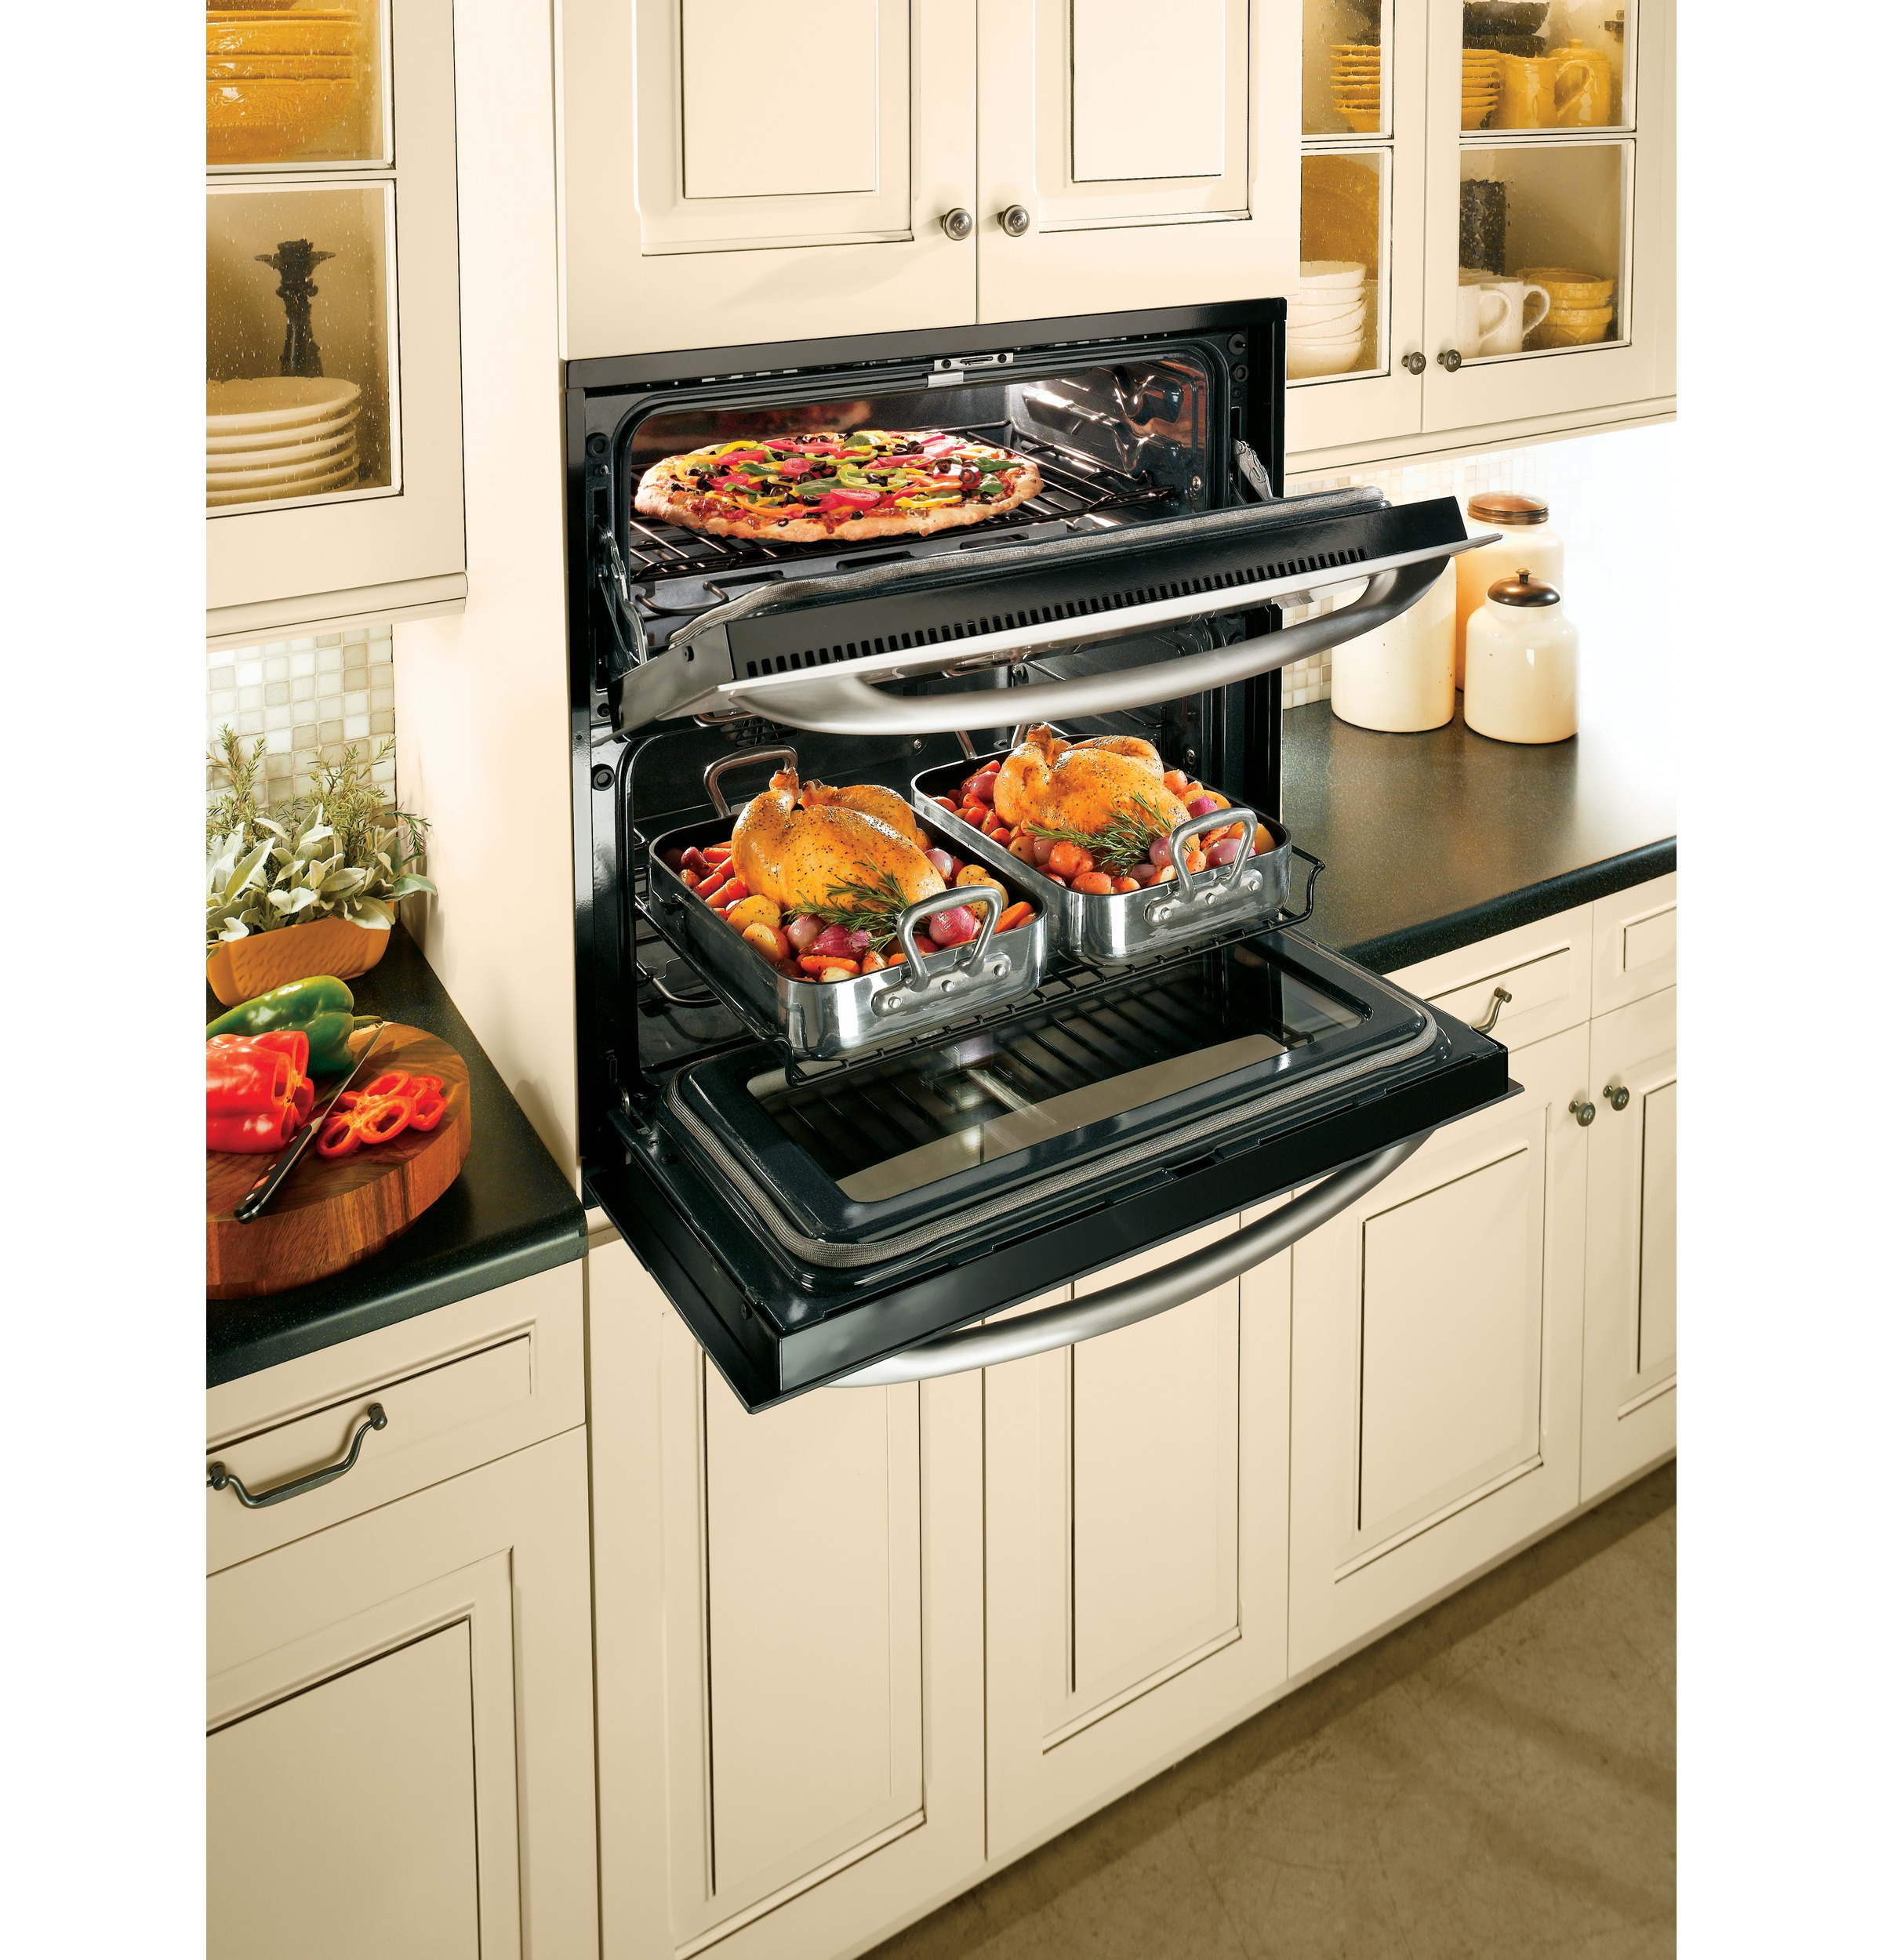 GE Cooks up Double Oven Versatility in e Small Space